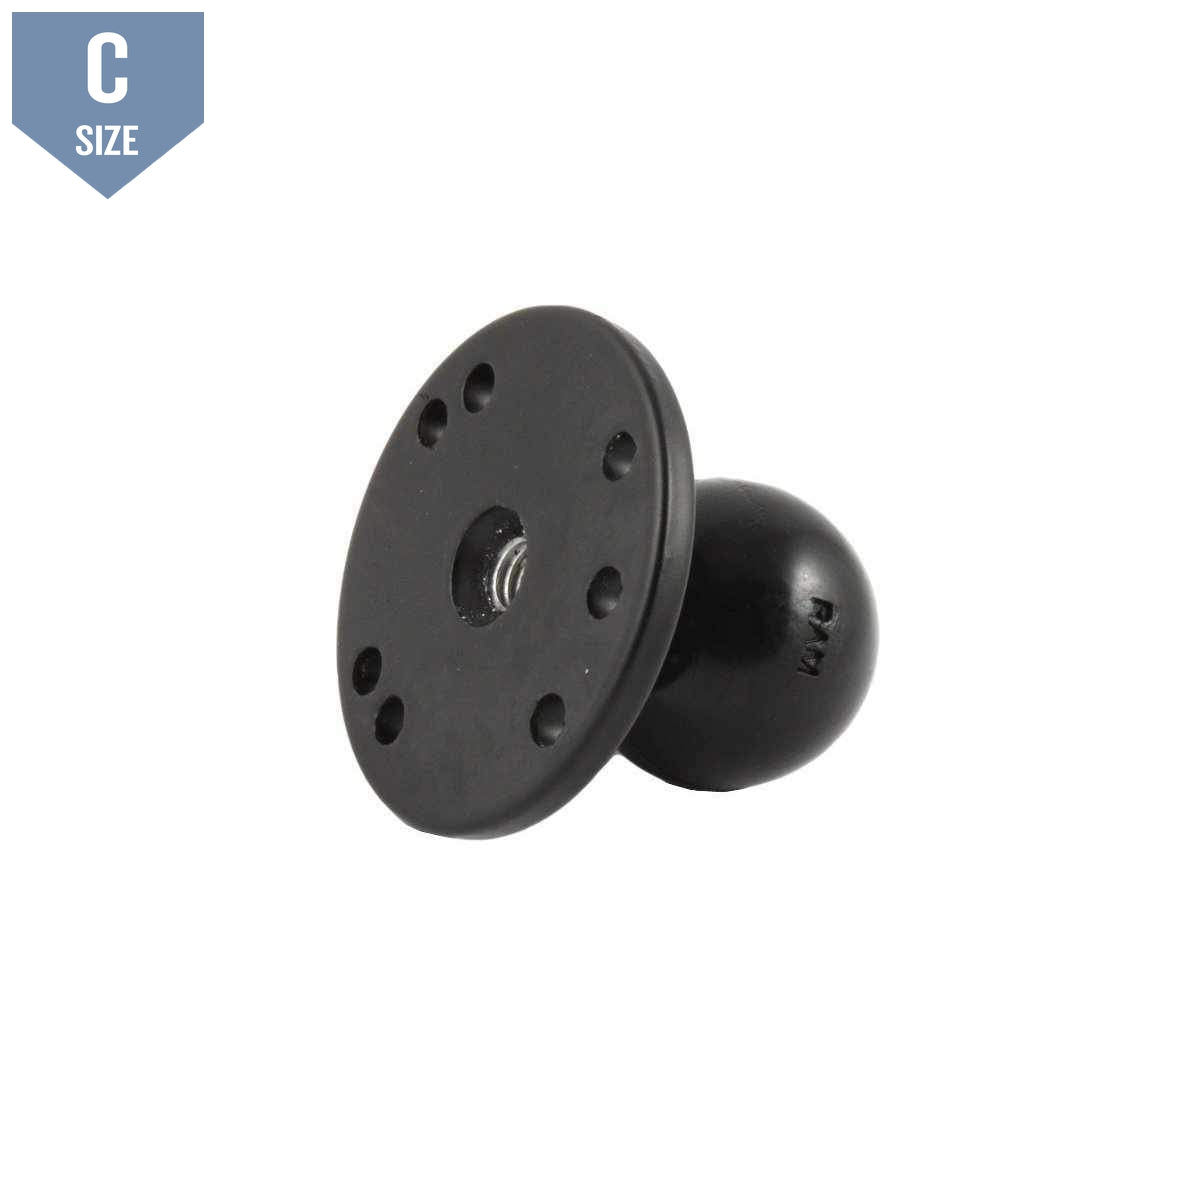 "RAM 2.5"" Round Base w Female Threaded Hole & 1.5"" Ball (RAM-202CNSU) - Modest Mounts"